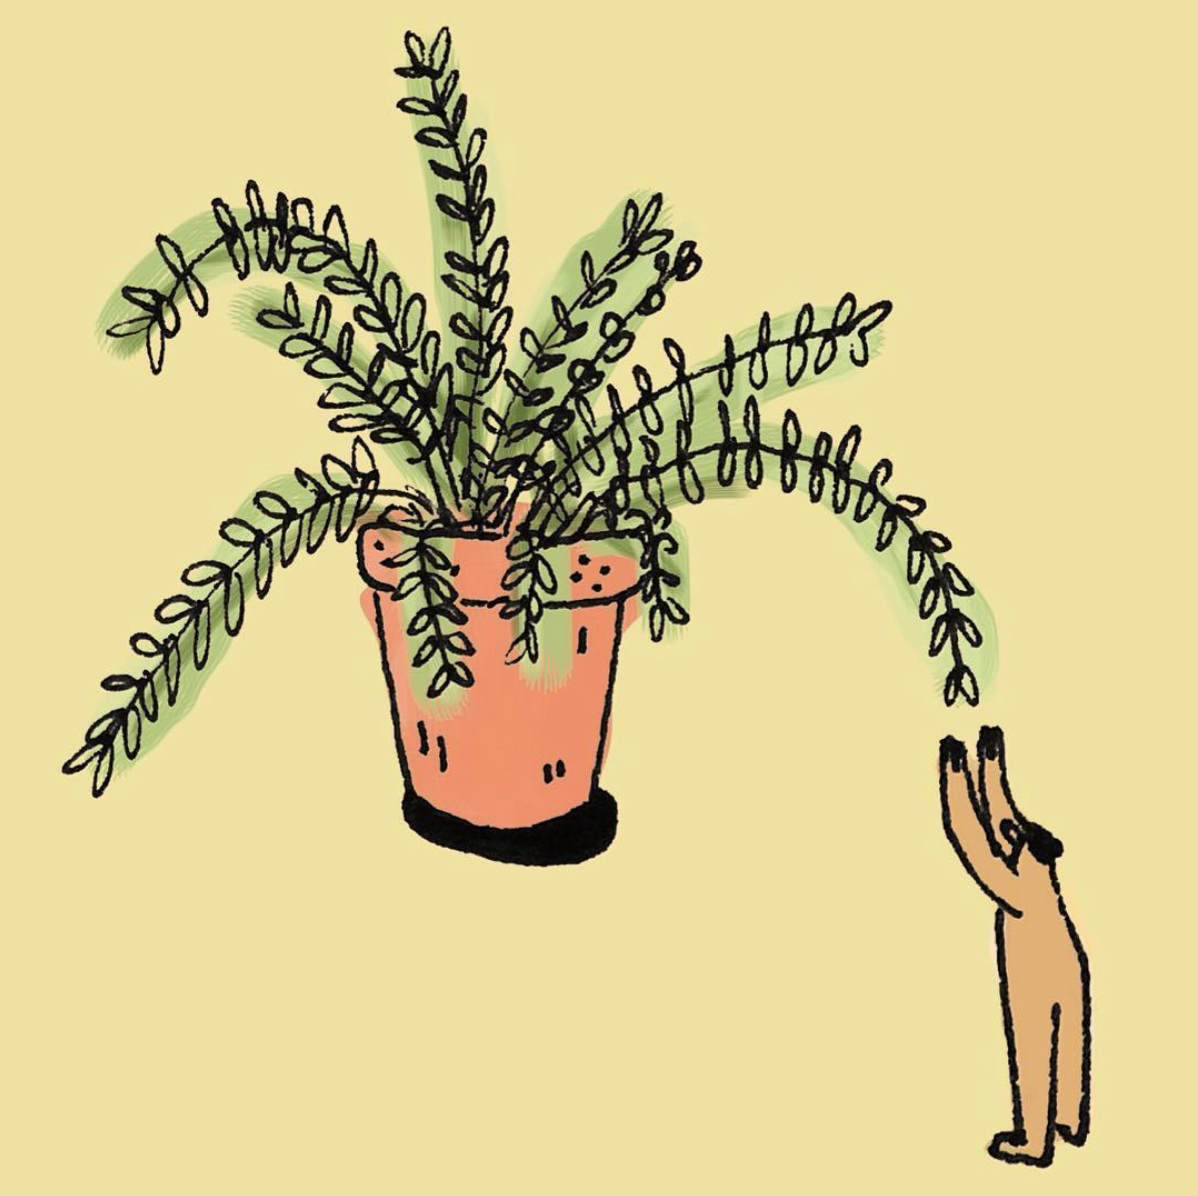 Pictured: Lily Xie's illustration about the beauty of ferns - Source: https://www.instagram.com/p/BVgA55hgPK6/